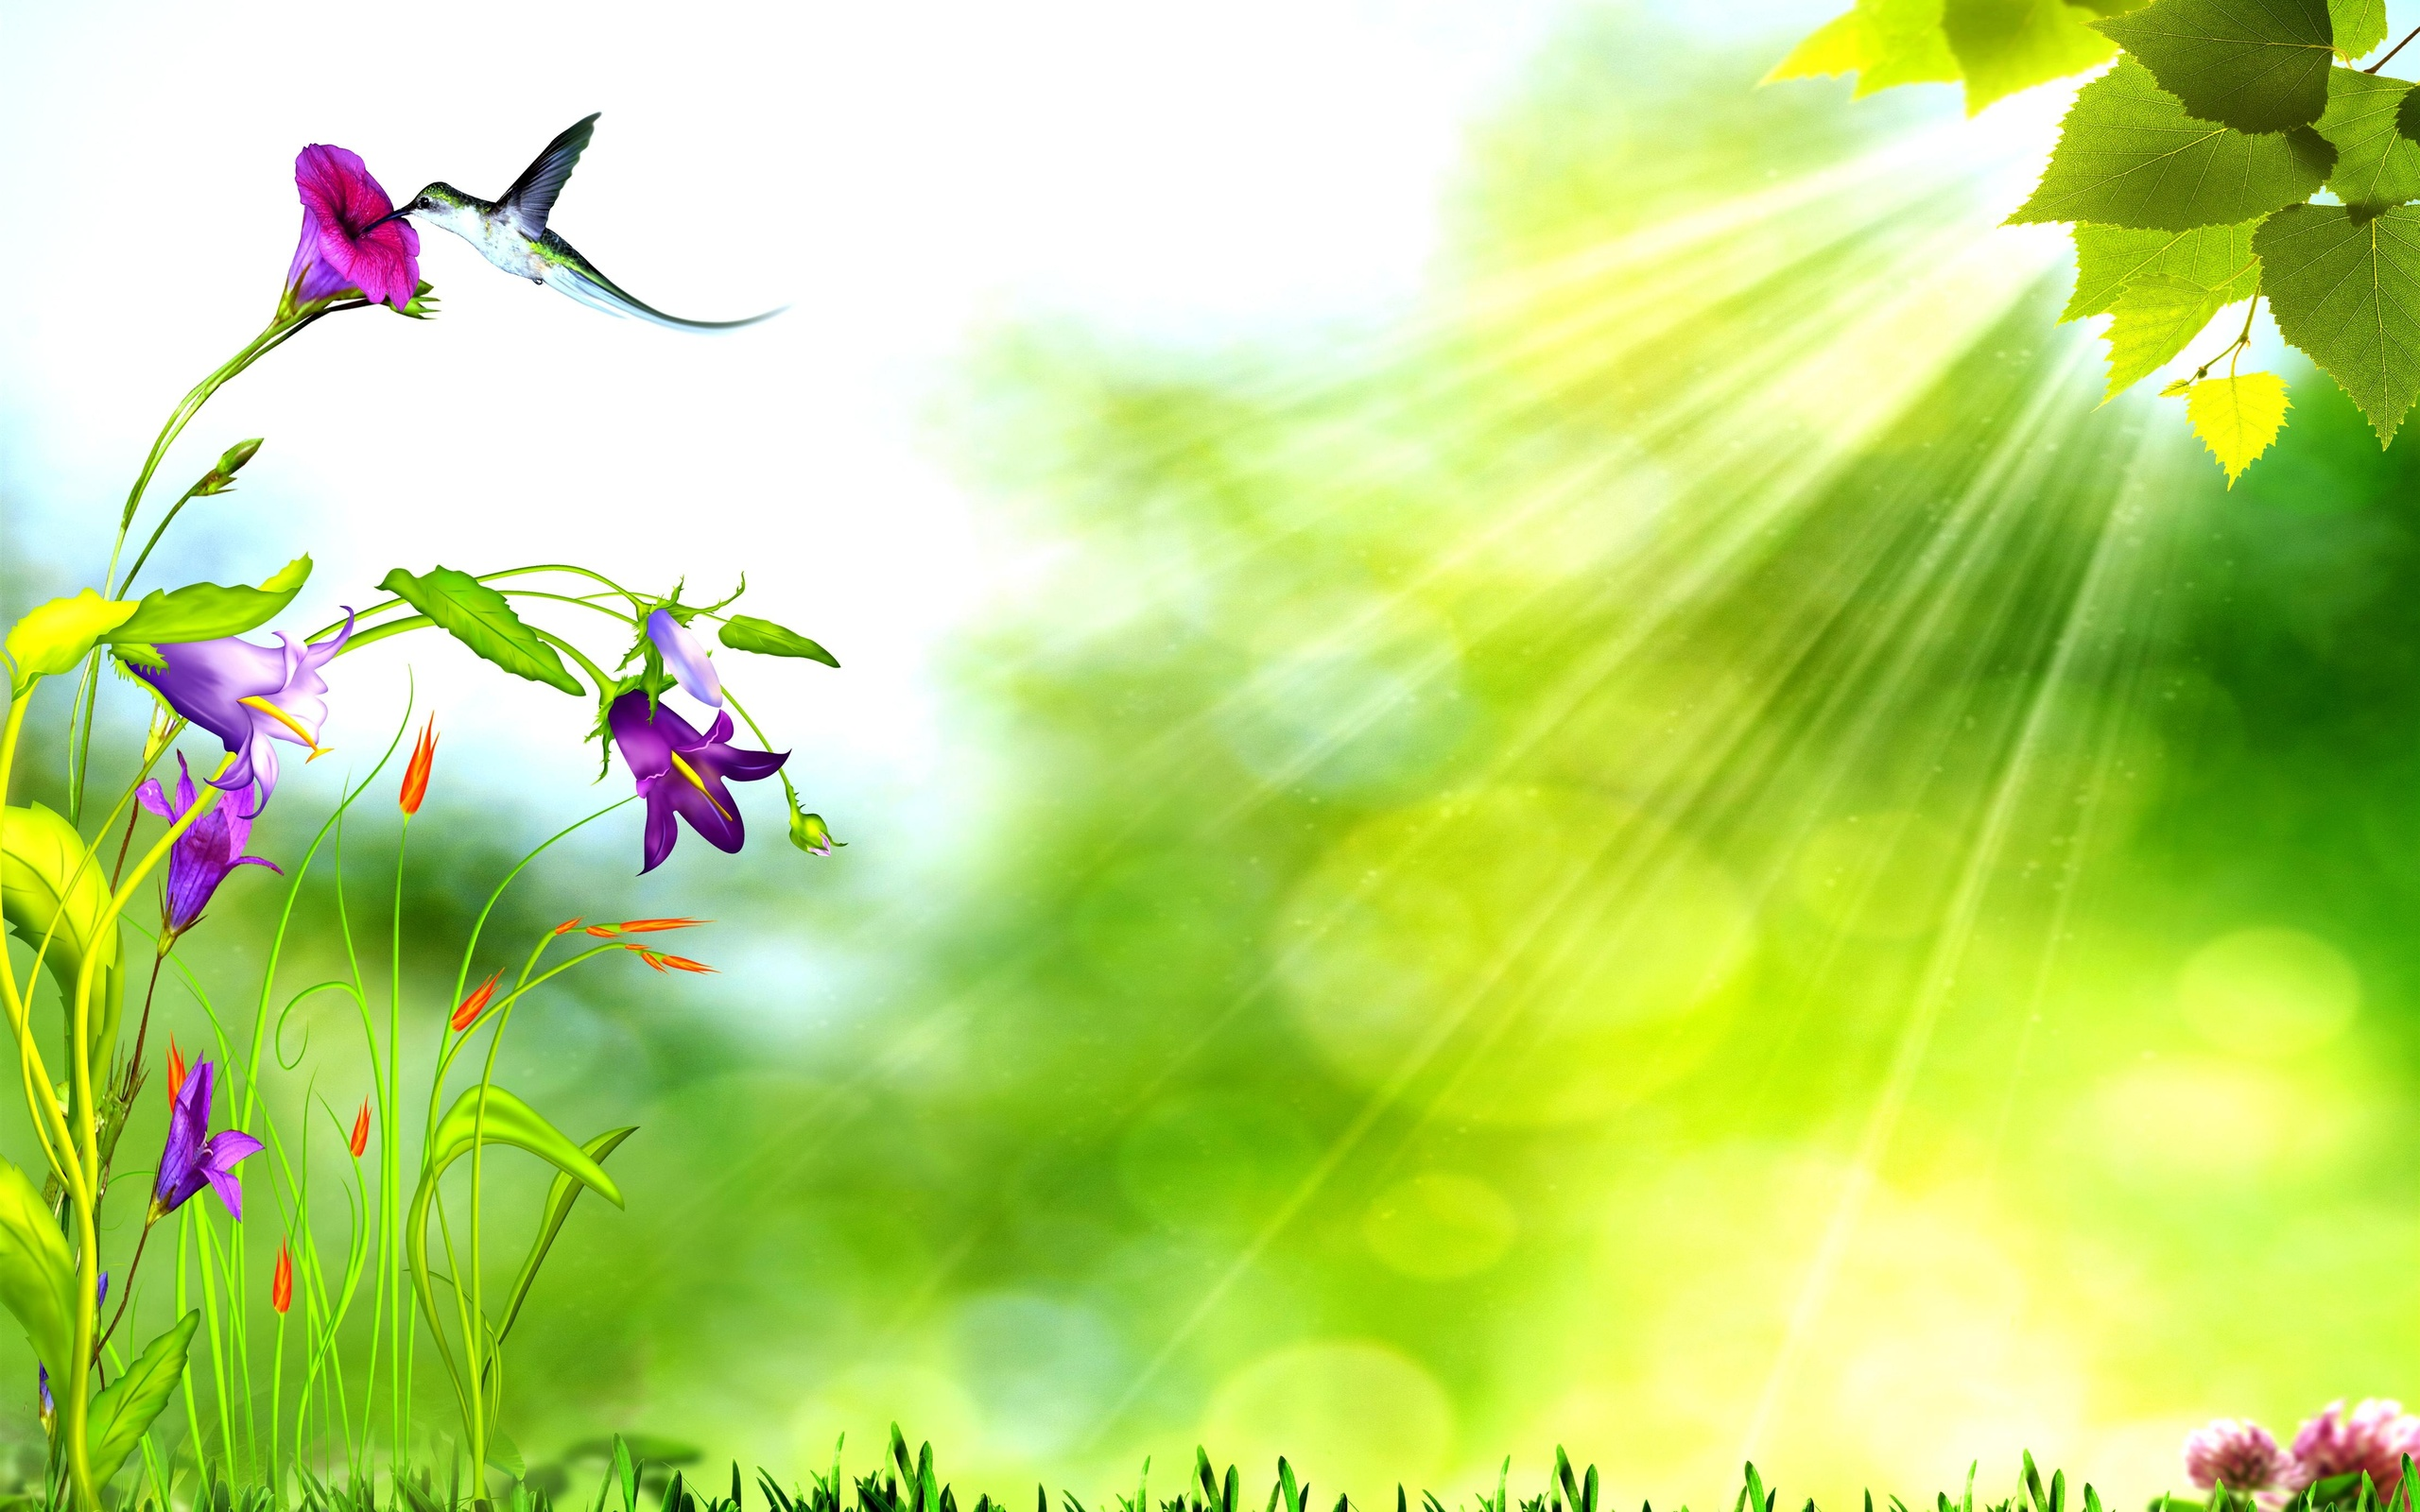 Nature Background Images Backgrounds Nature d art